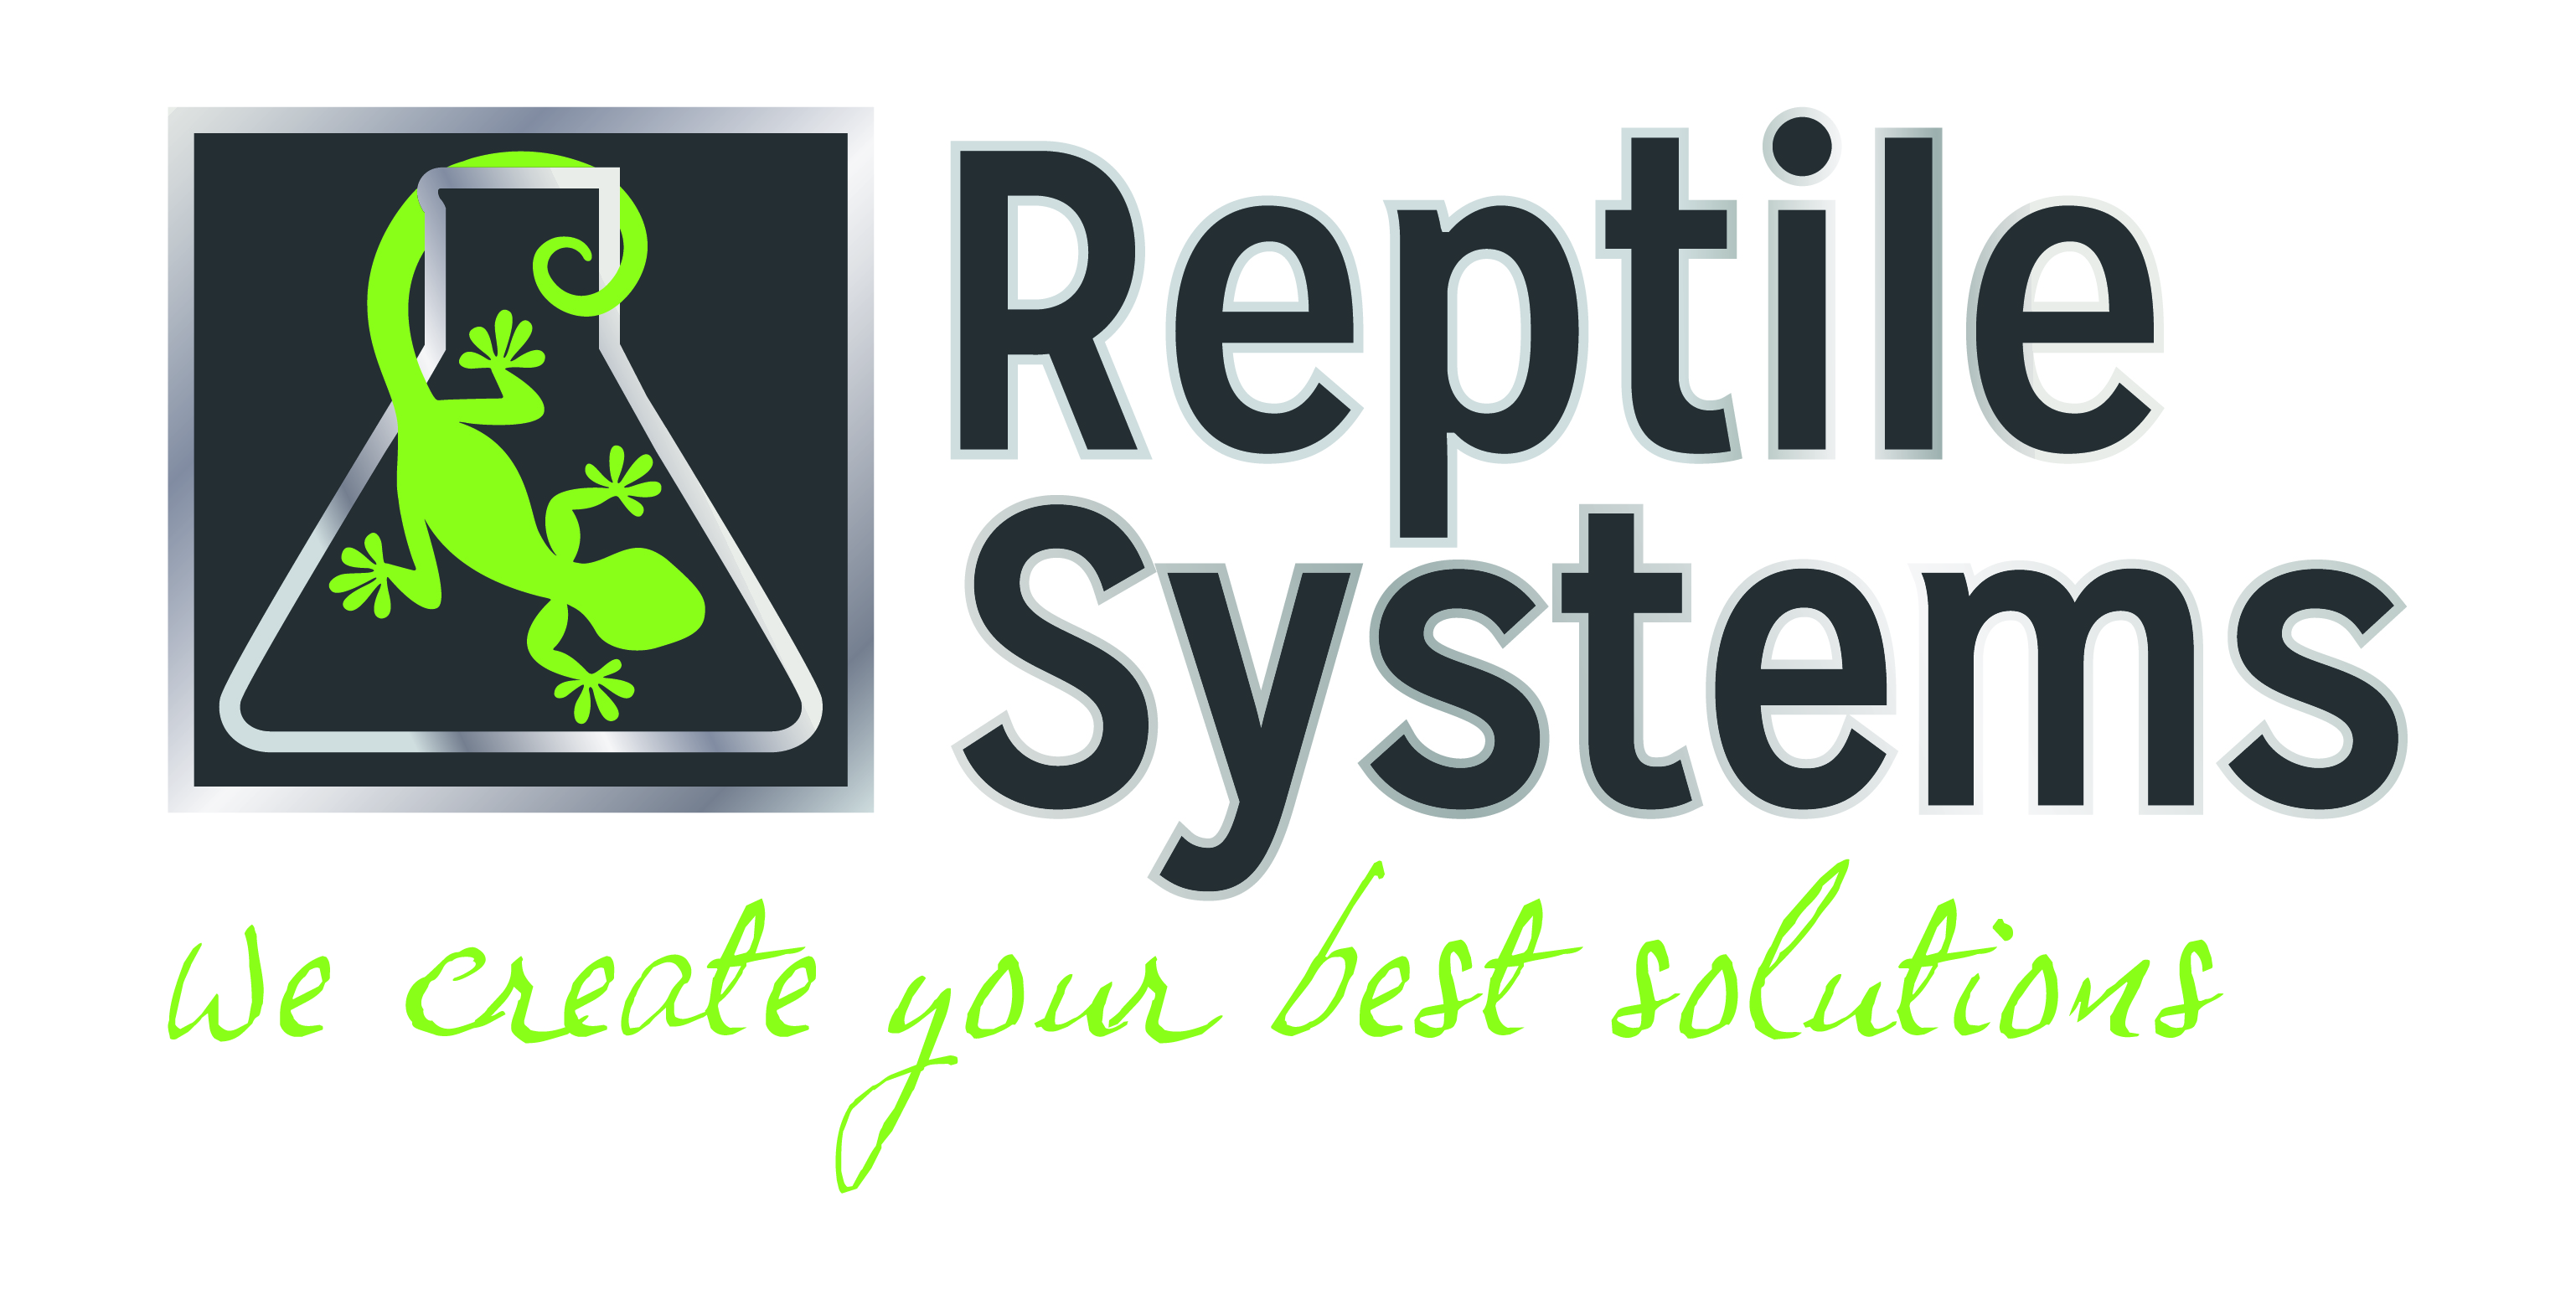 Reptile Systems